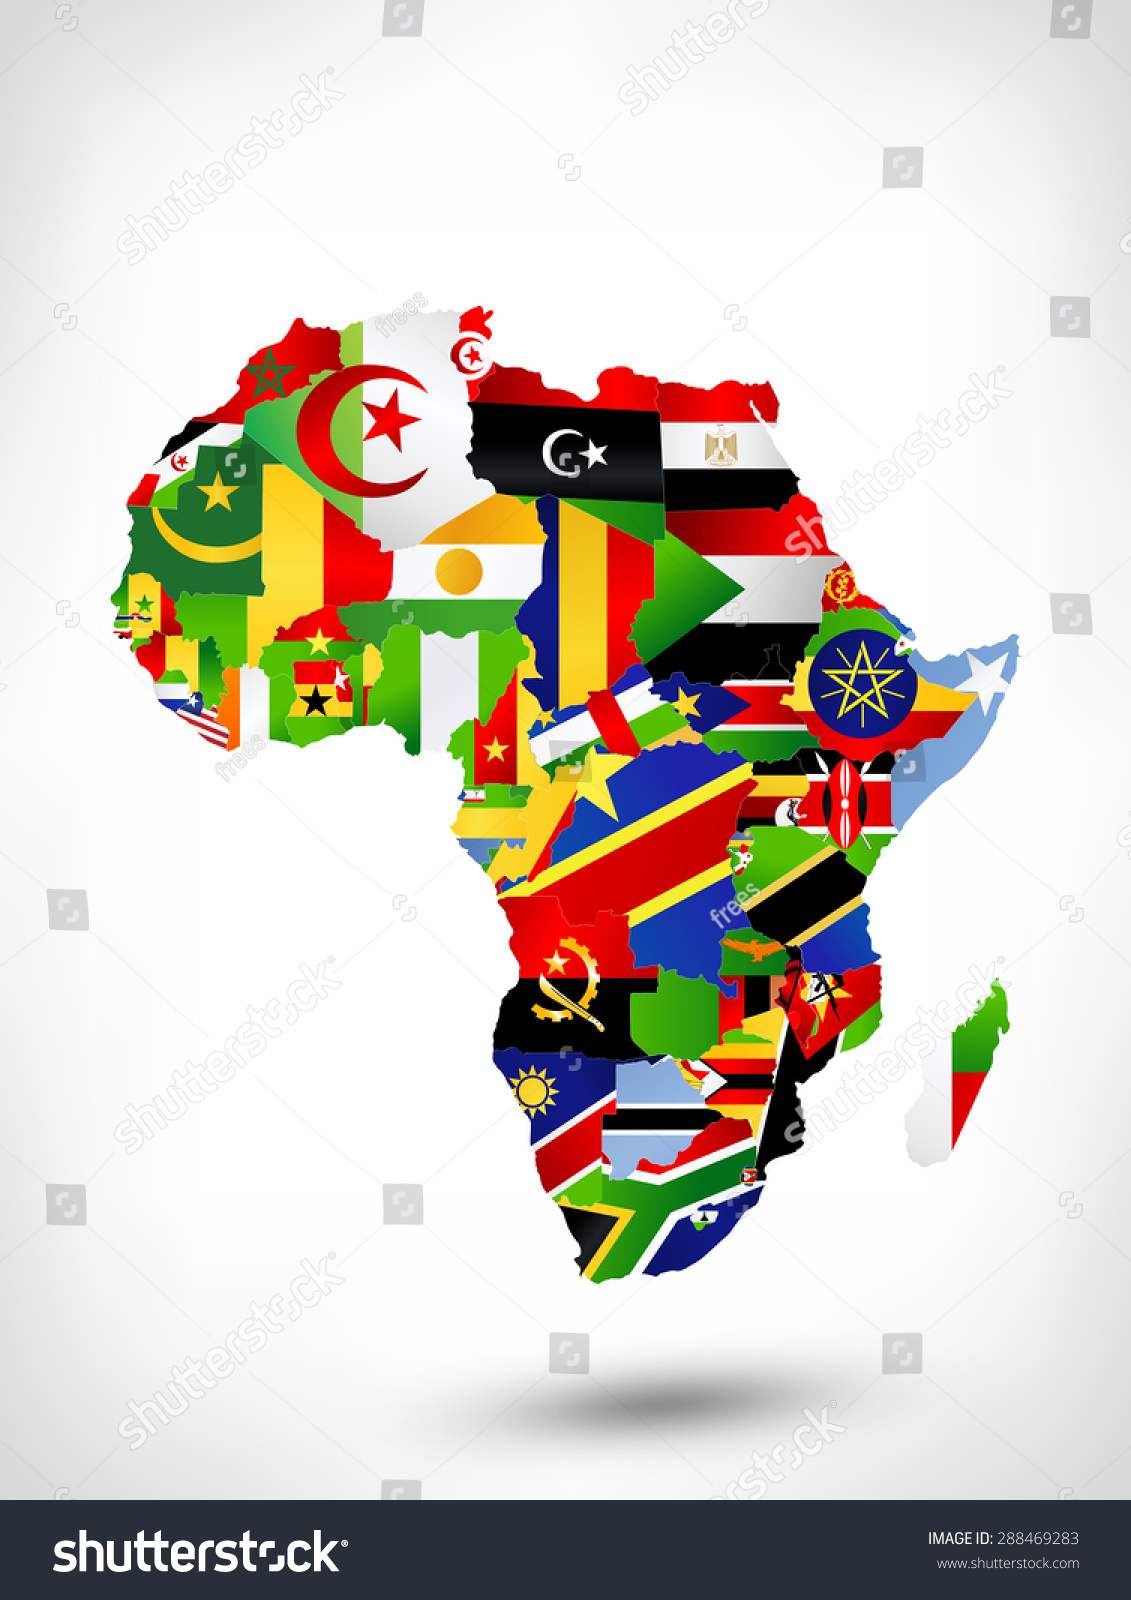 Map Of Africa With Flags.Map Africa Flags Location On World Stock Illustration 288469283